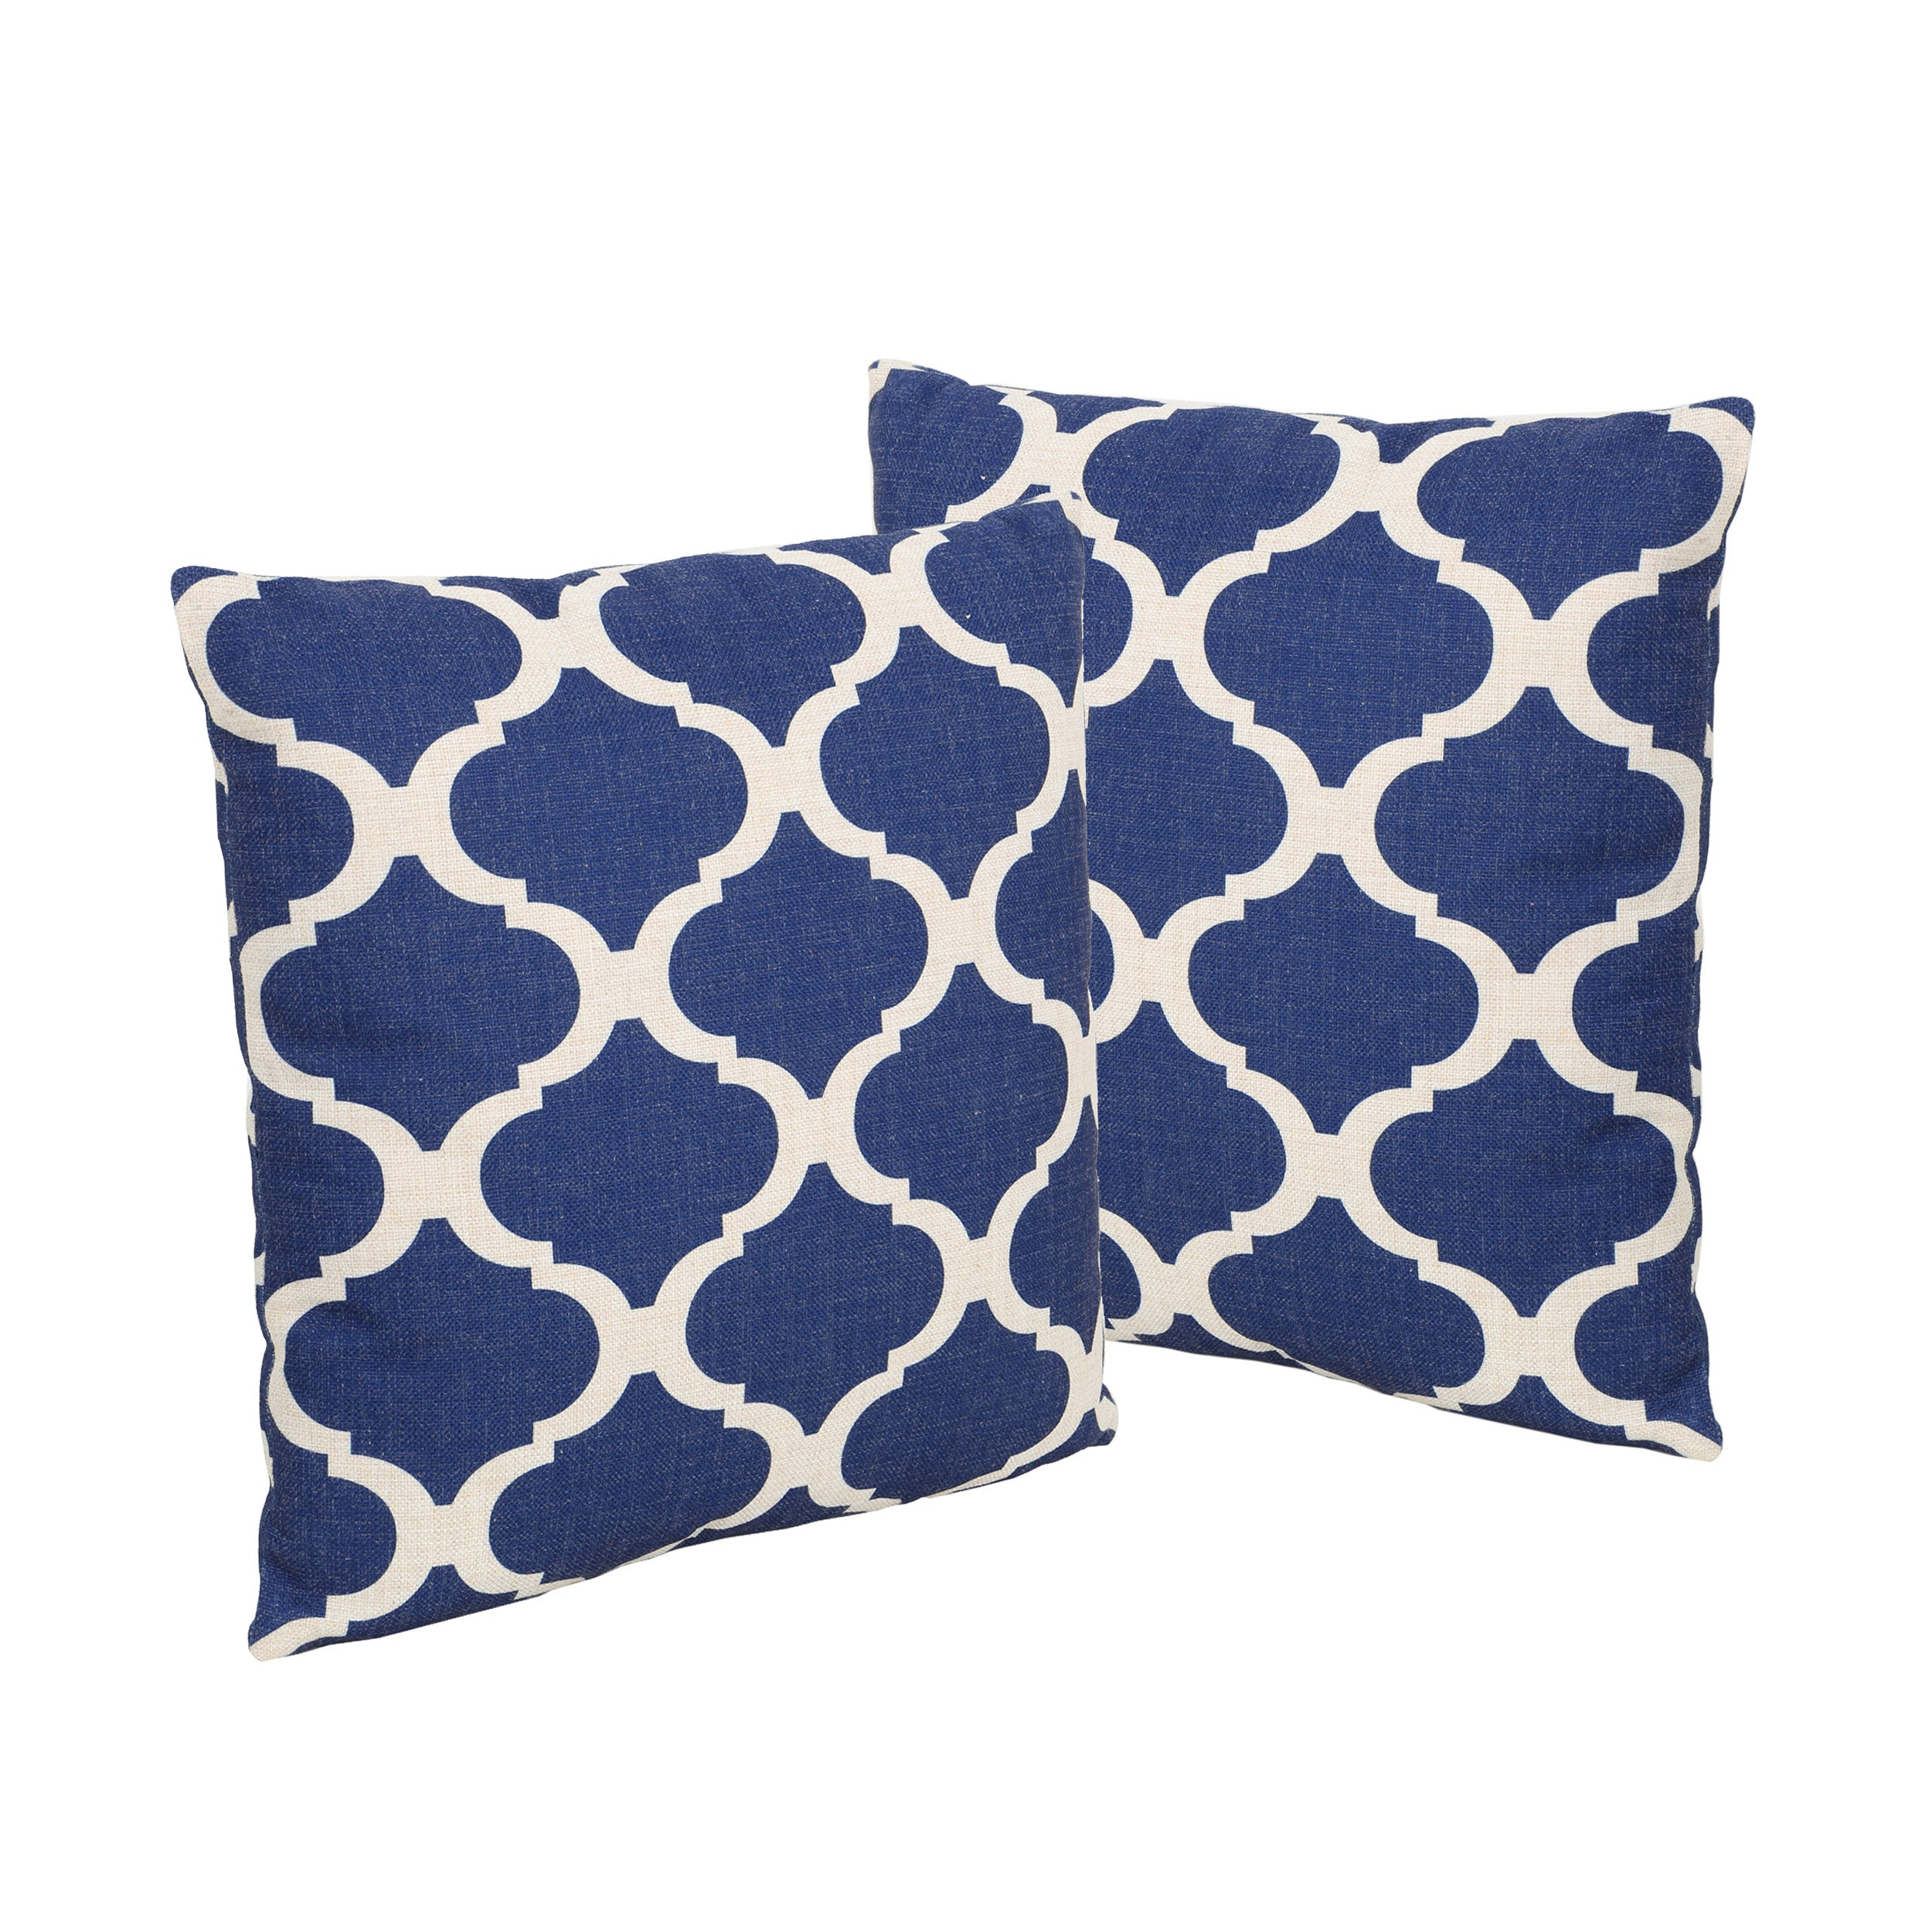 Amelia Outdoor 18 inch Water Resistant Square Pillows